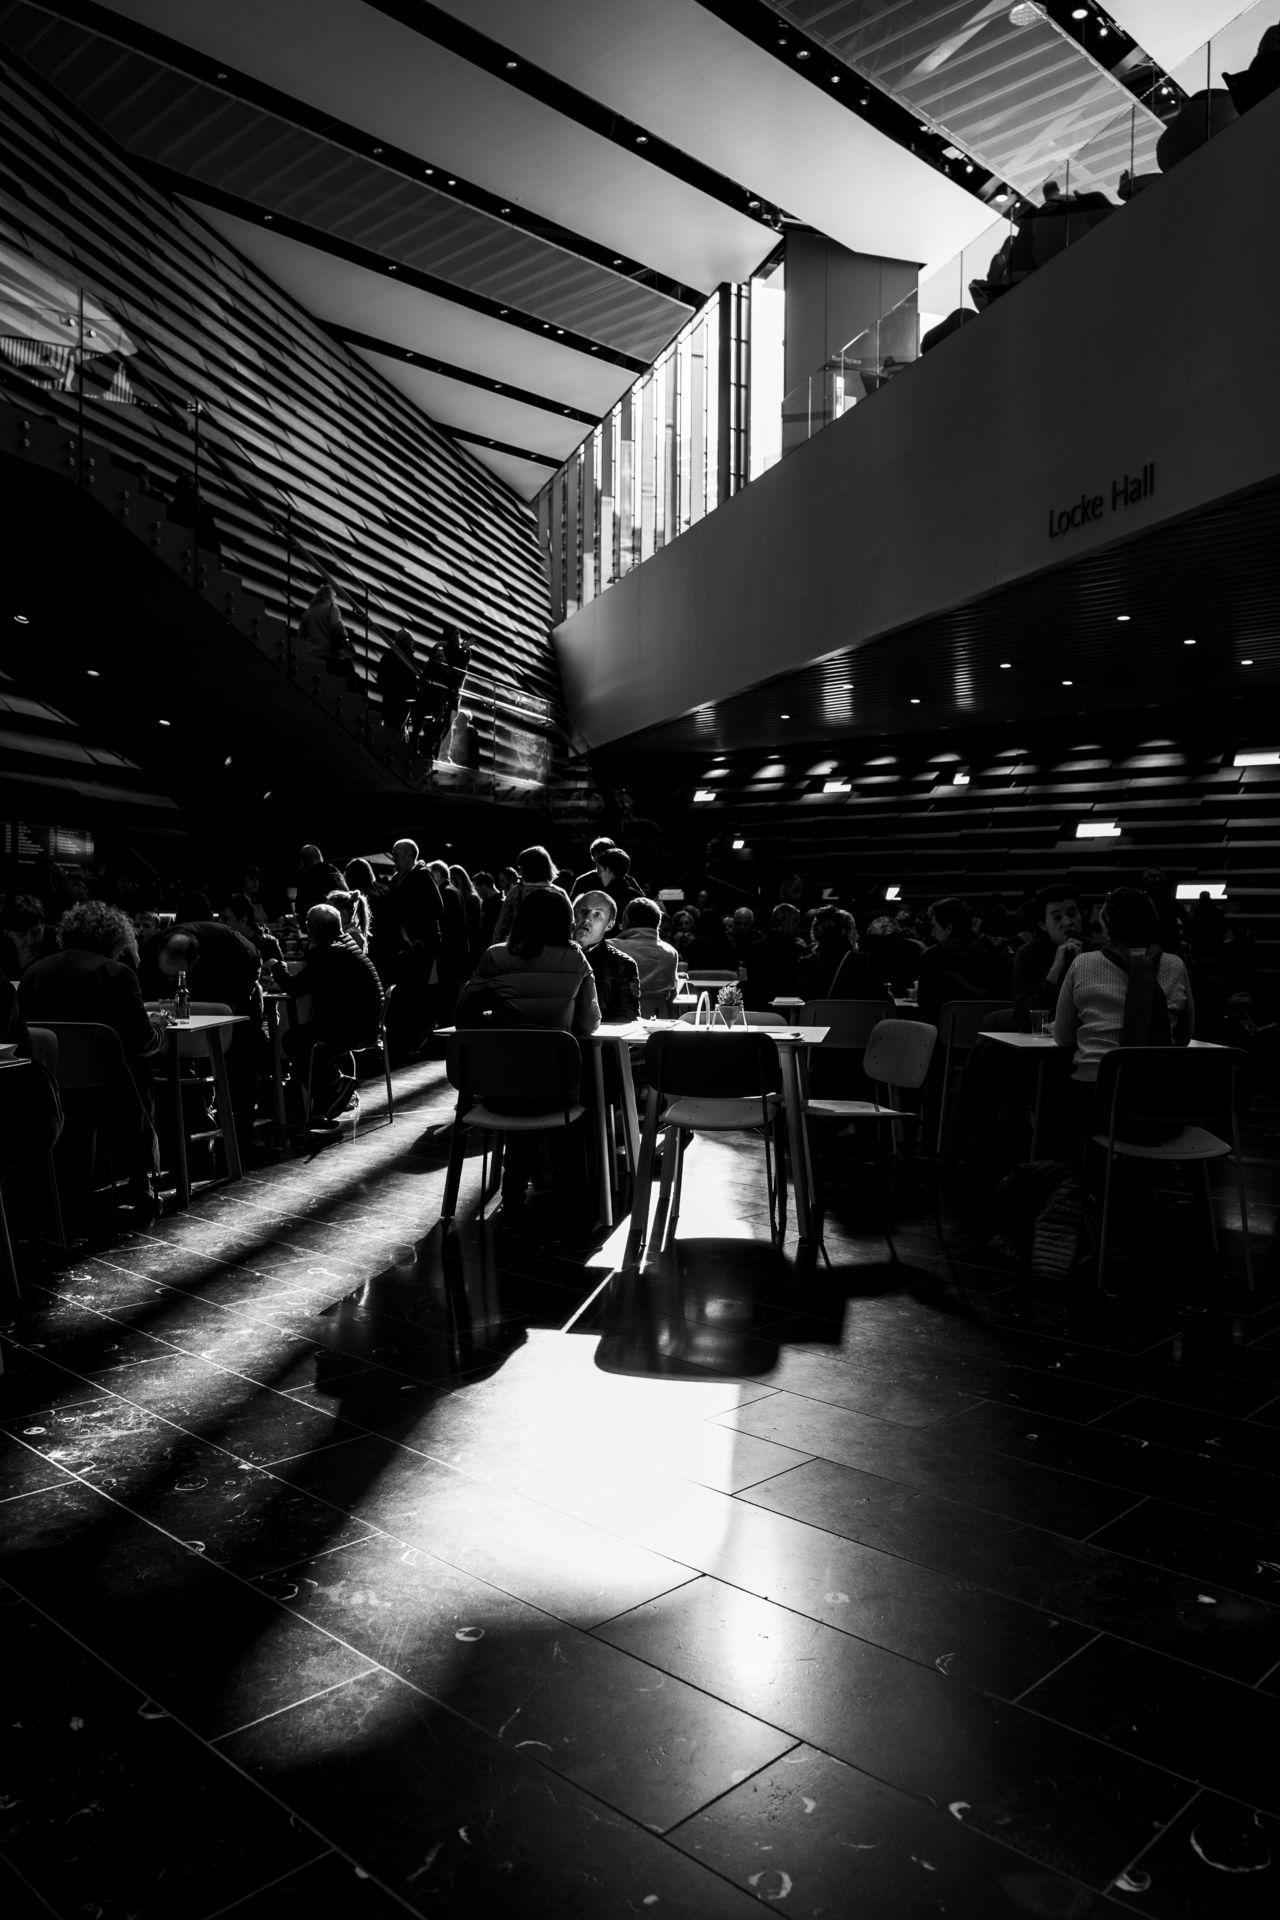 A photo of V&A Dundee's cafe with people sitting at tables with the high ceiling and striated architecture filling the backdrop. Black and white.